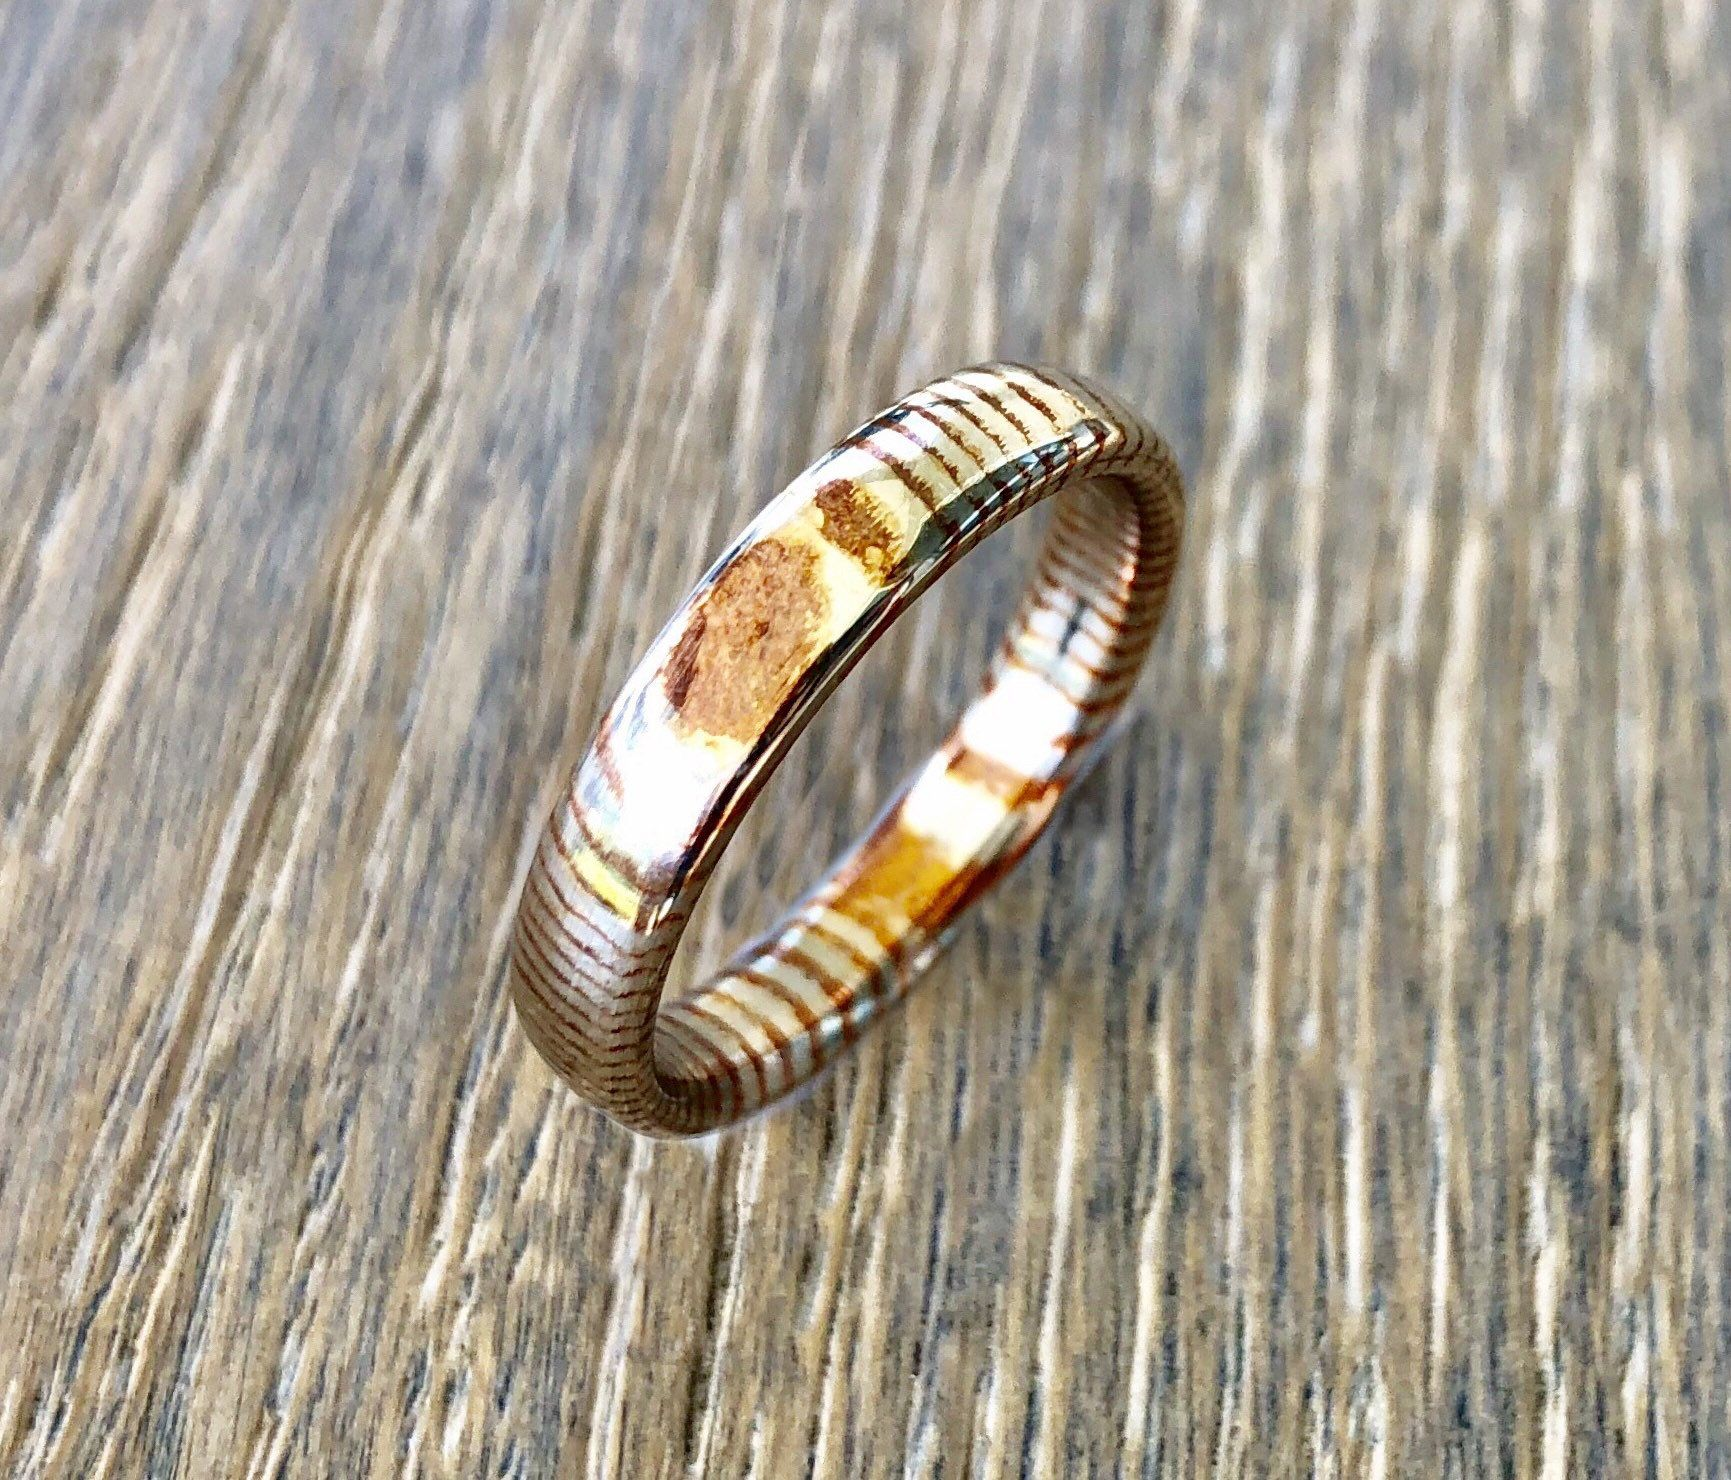 Custom damascus steel mokume gane ring made to order promise ring